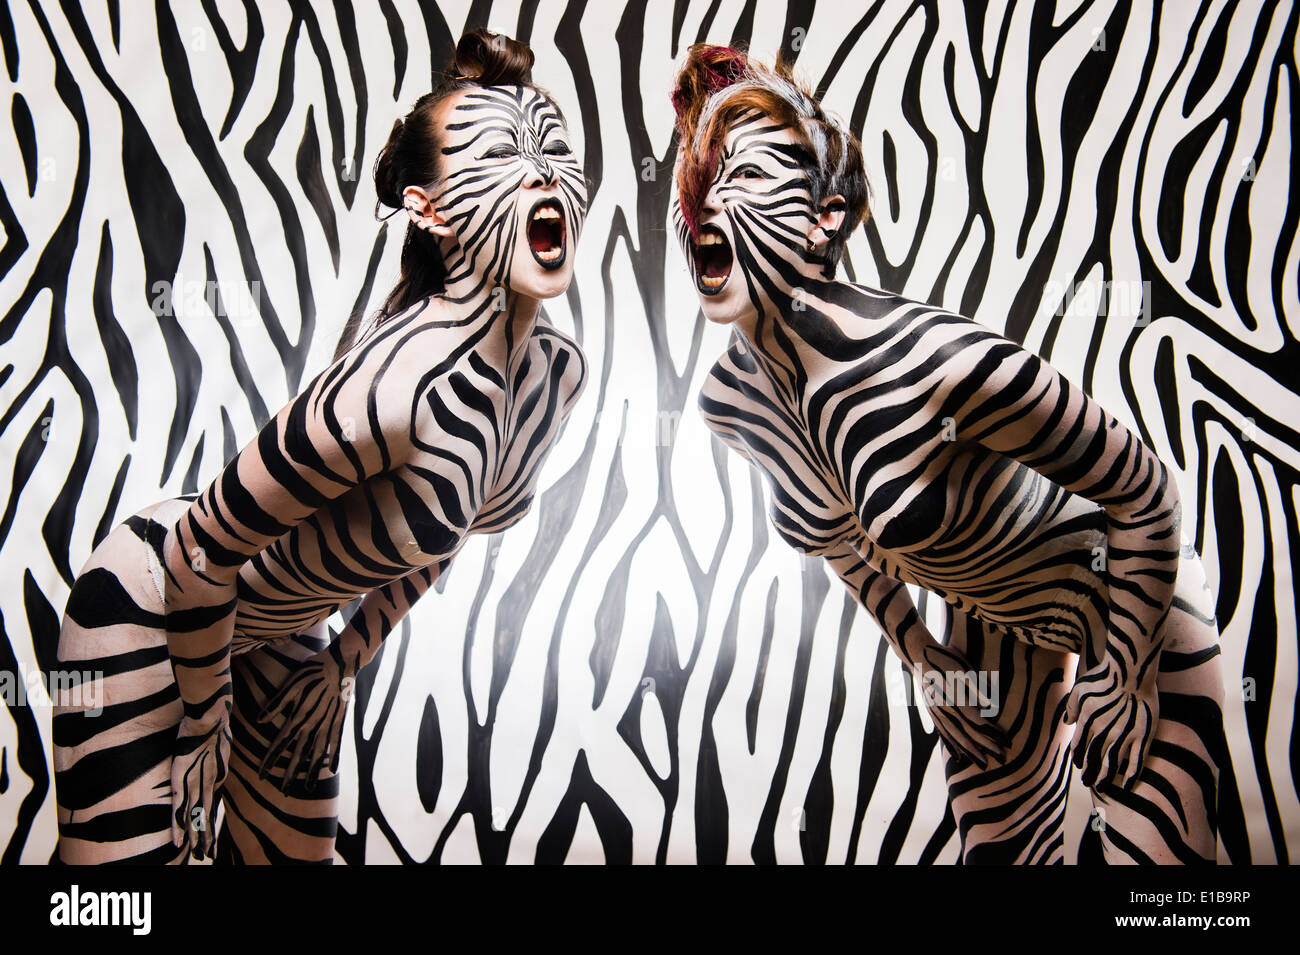 Two women girls with their bodies painted in black and white zebra stripes to match the background - Stock Image